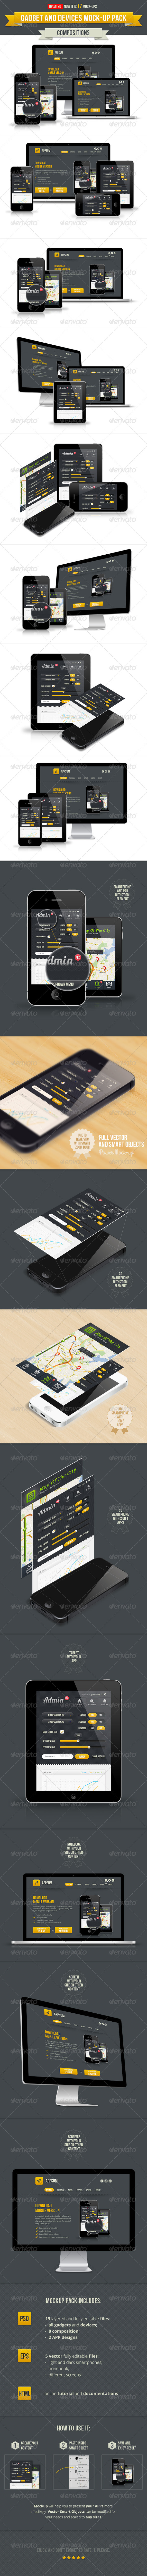 Gadget and Devices APP and Design mockup Pack - Displays Product Mock-Ups